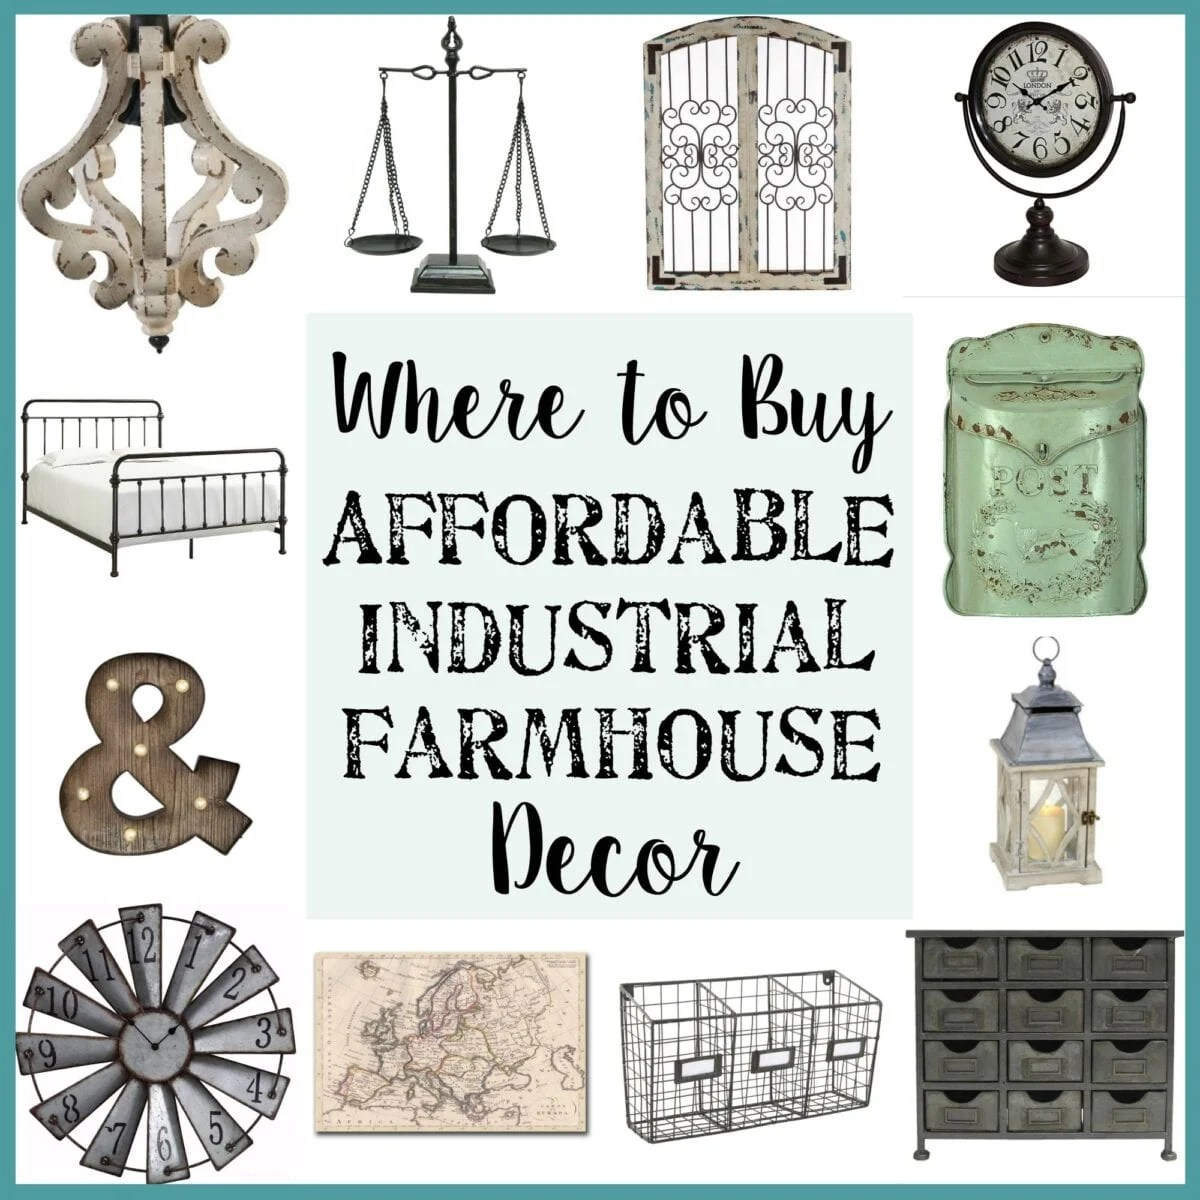 Where to Buy Affordable Industrial Farmhouse Decor   Bless'er House